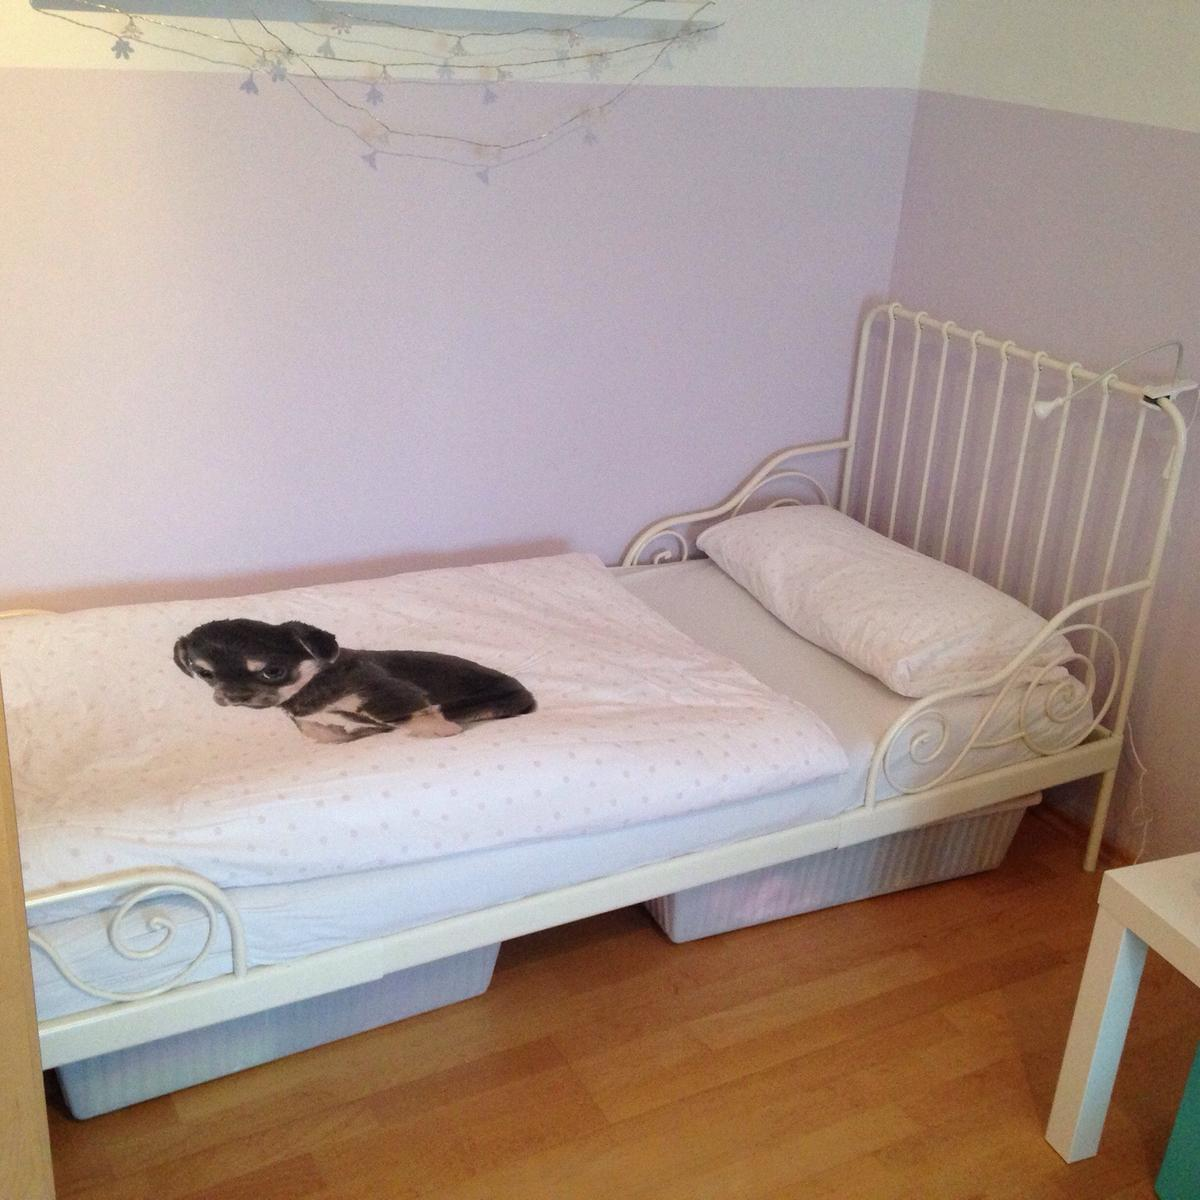 Ikea Bett Kinder Minnen In 63801 Kleinostheim For 80 00 For Sale Shpock